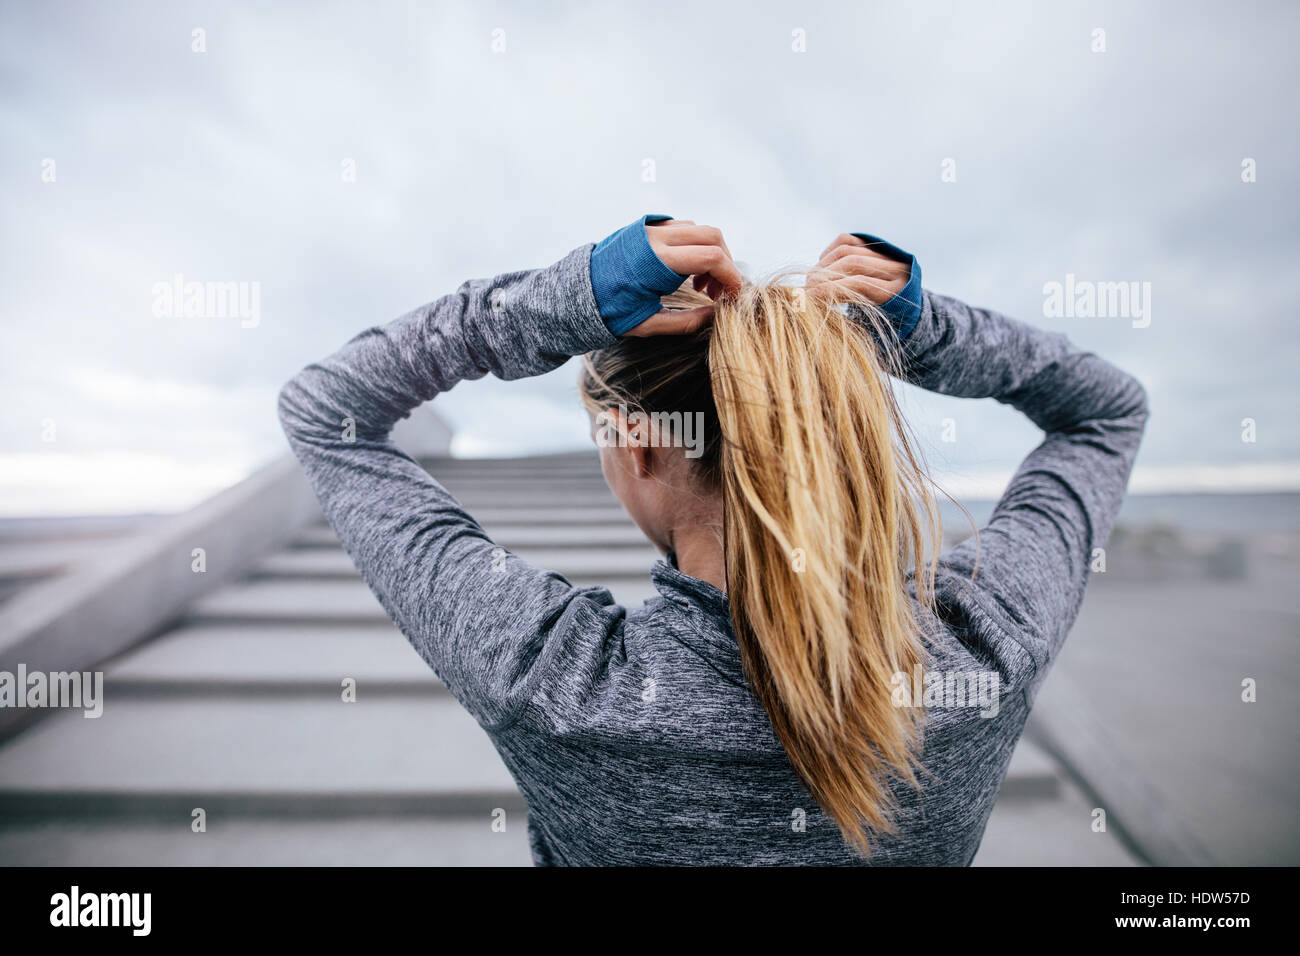 Rear view shot of fit female athlete tying hair before her workout. Young woman getting ready for training. - Stock Image